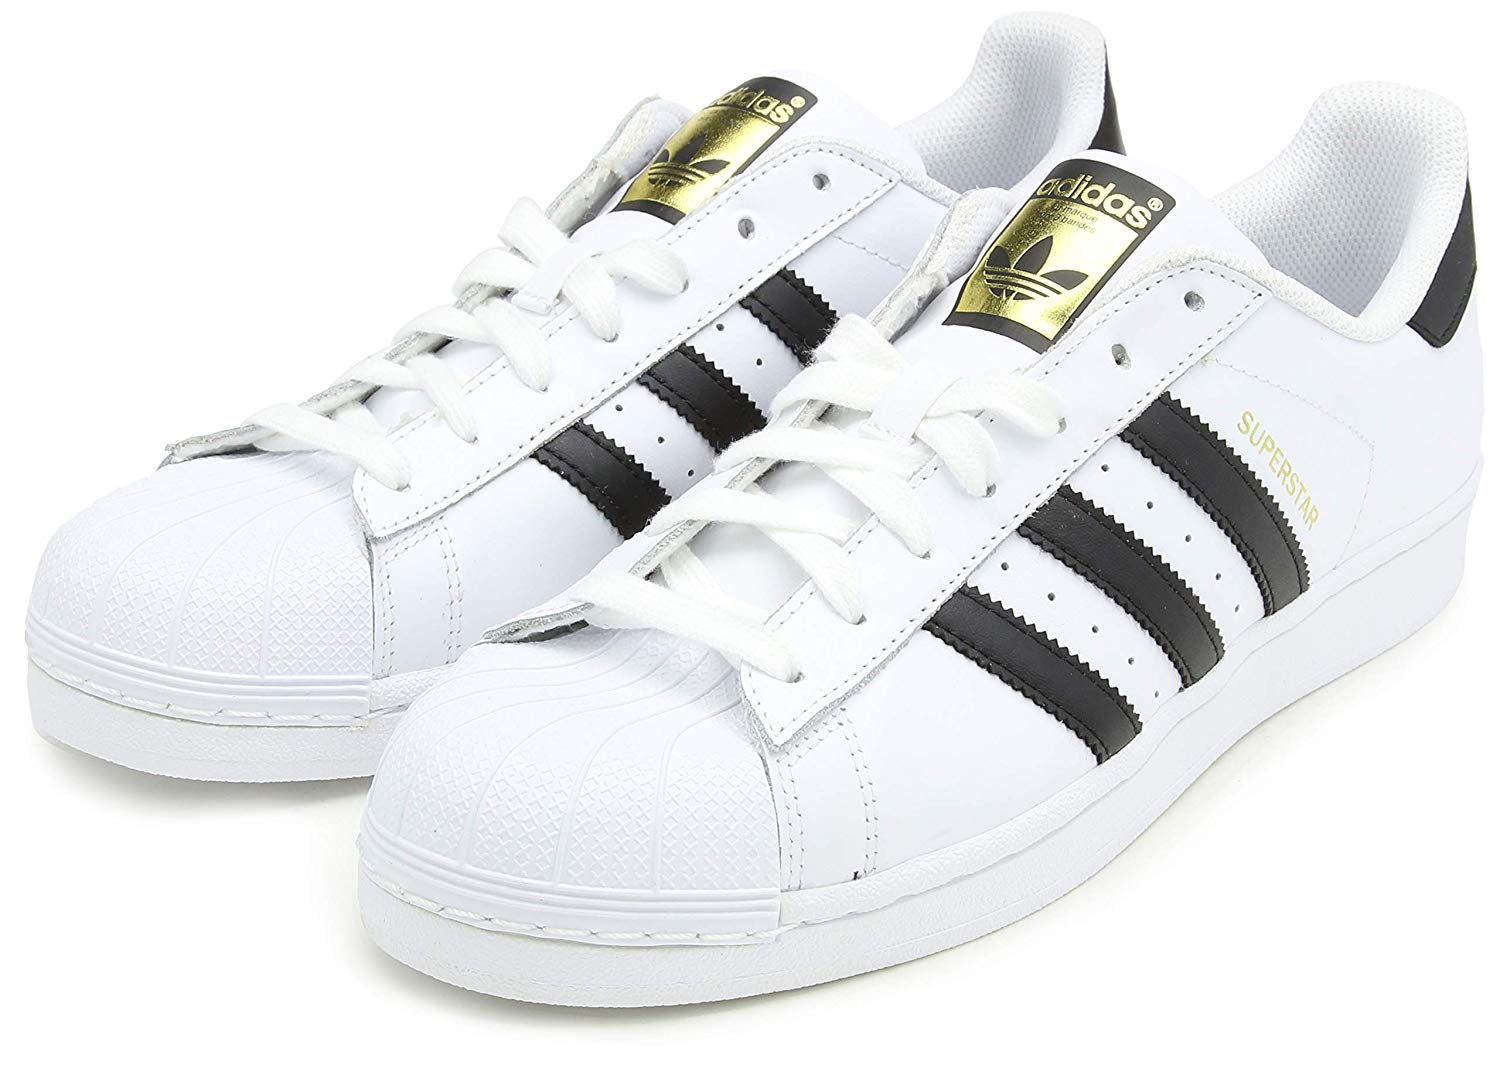 adidas superstar sneaker low white core black